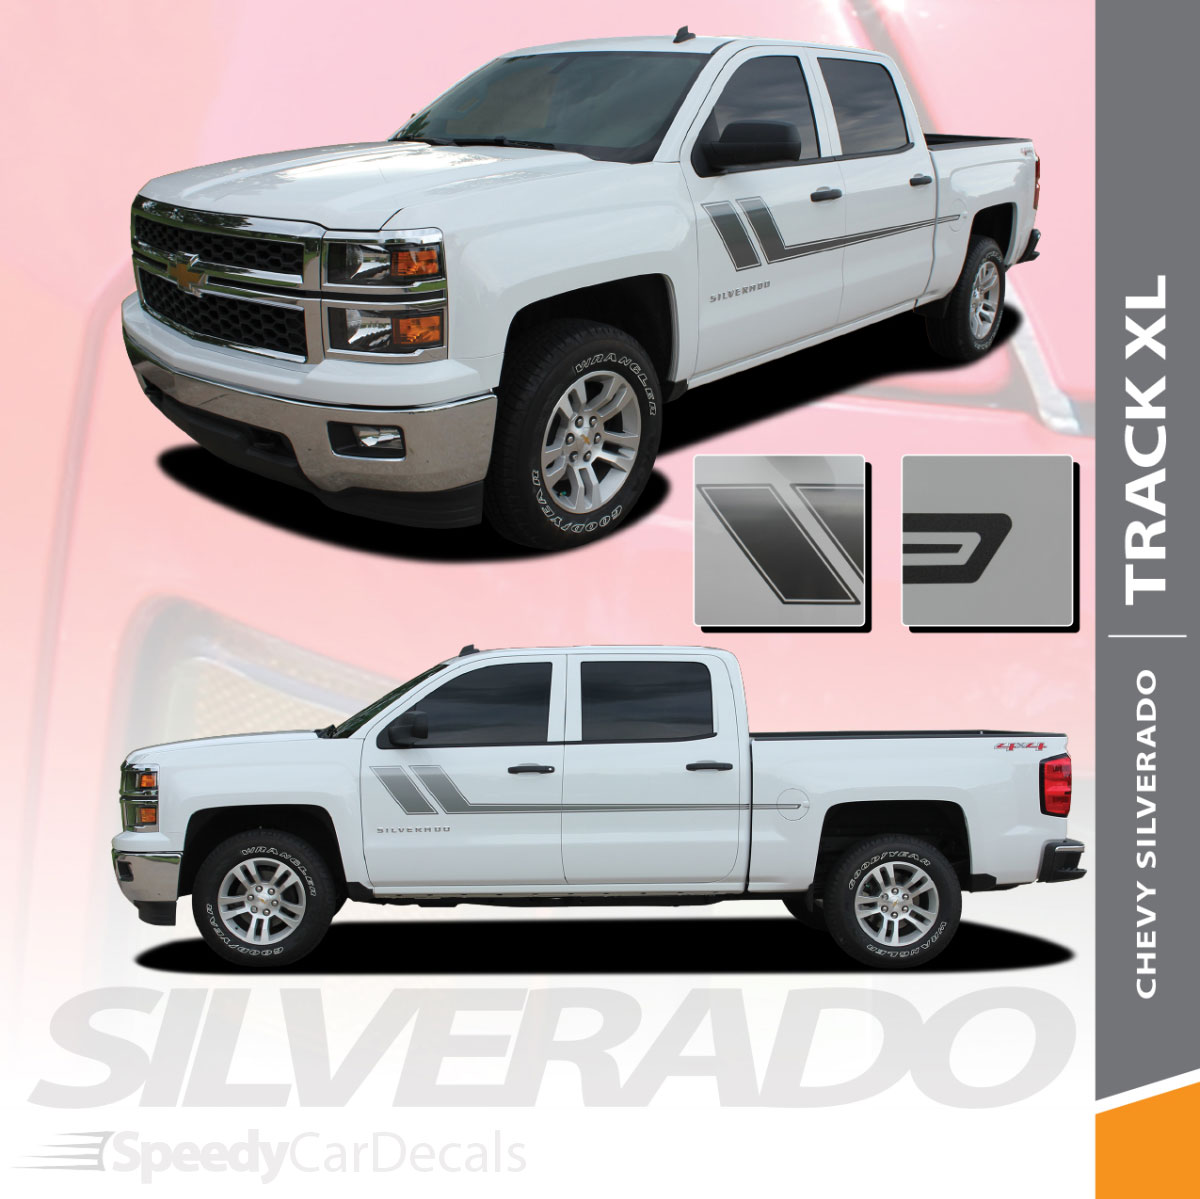 Track Xl Chevy Silverado Bed Stripes Side Decals 2013 2018 Wet And